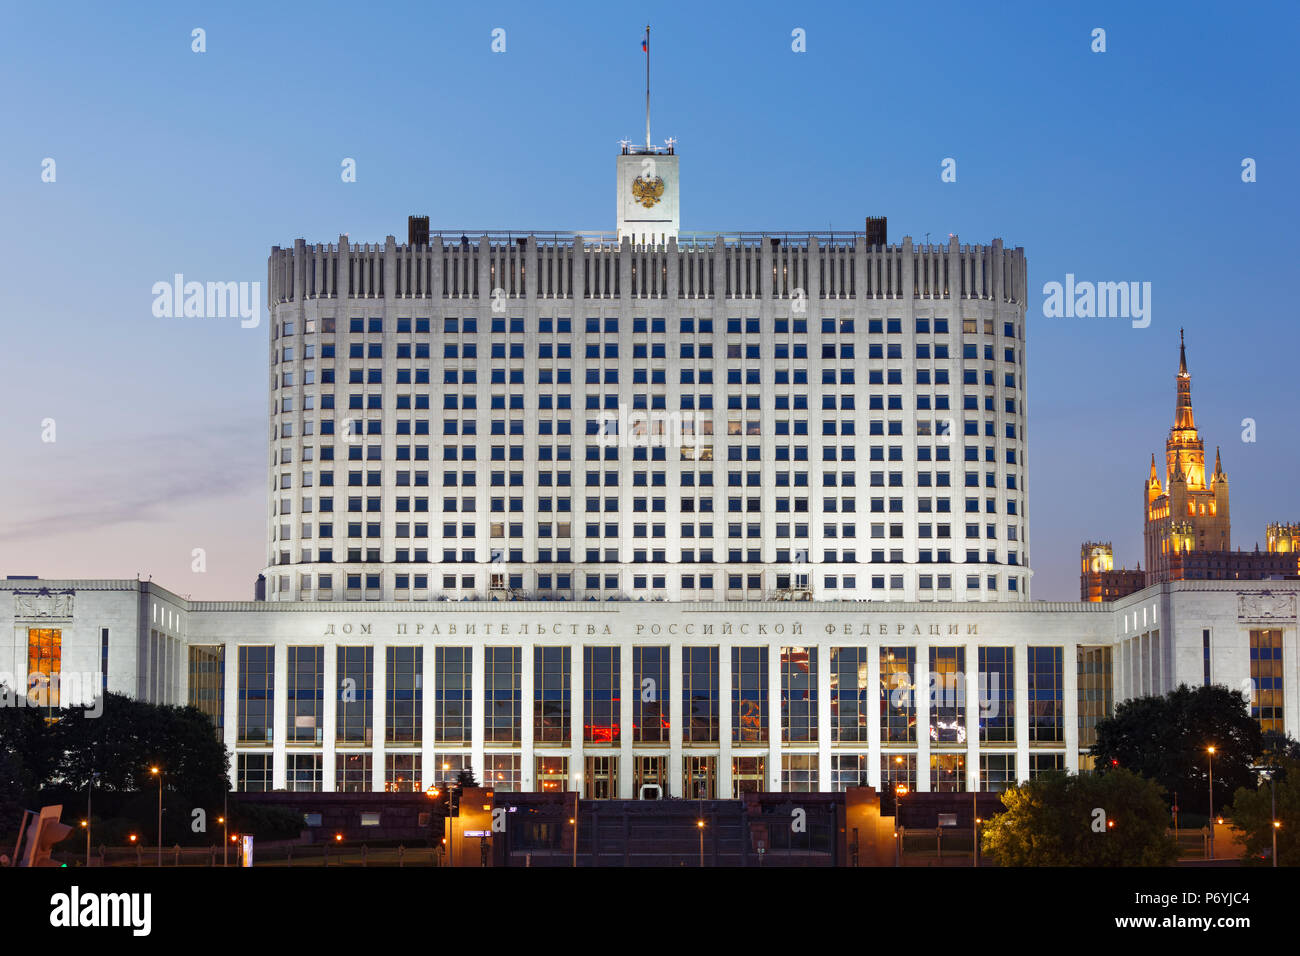 Government Building of the Russian Federation on Krasnopresnenskaya Embankment illuminated at dusk. Moscow, Russia. - Stock Image